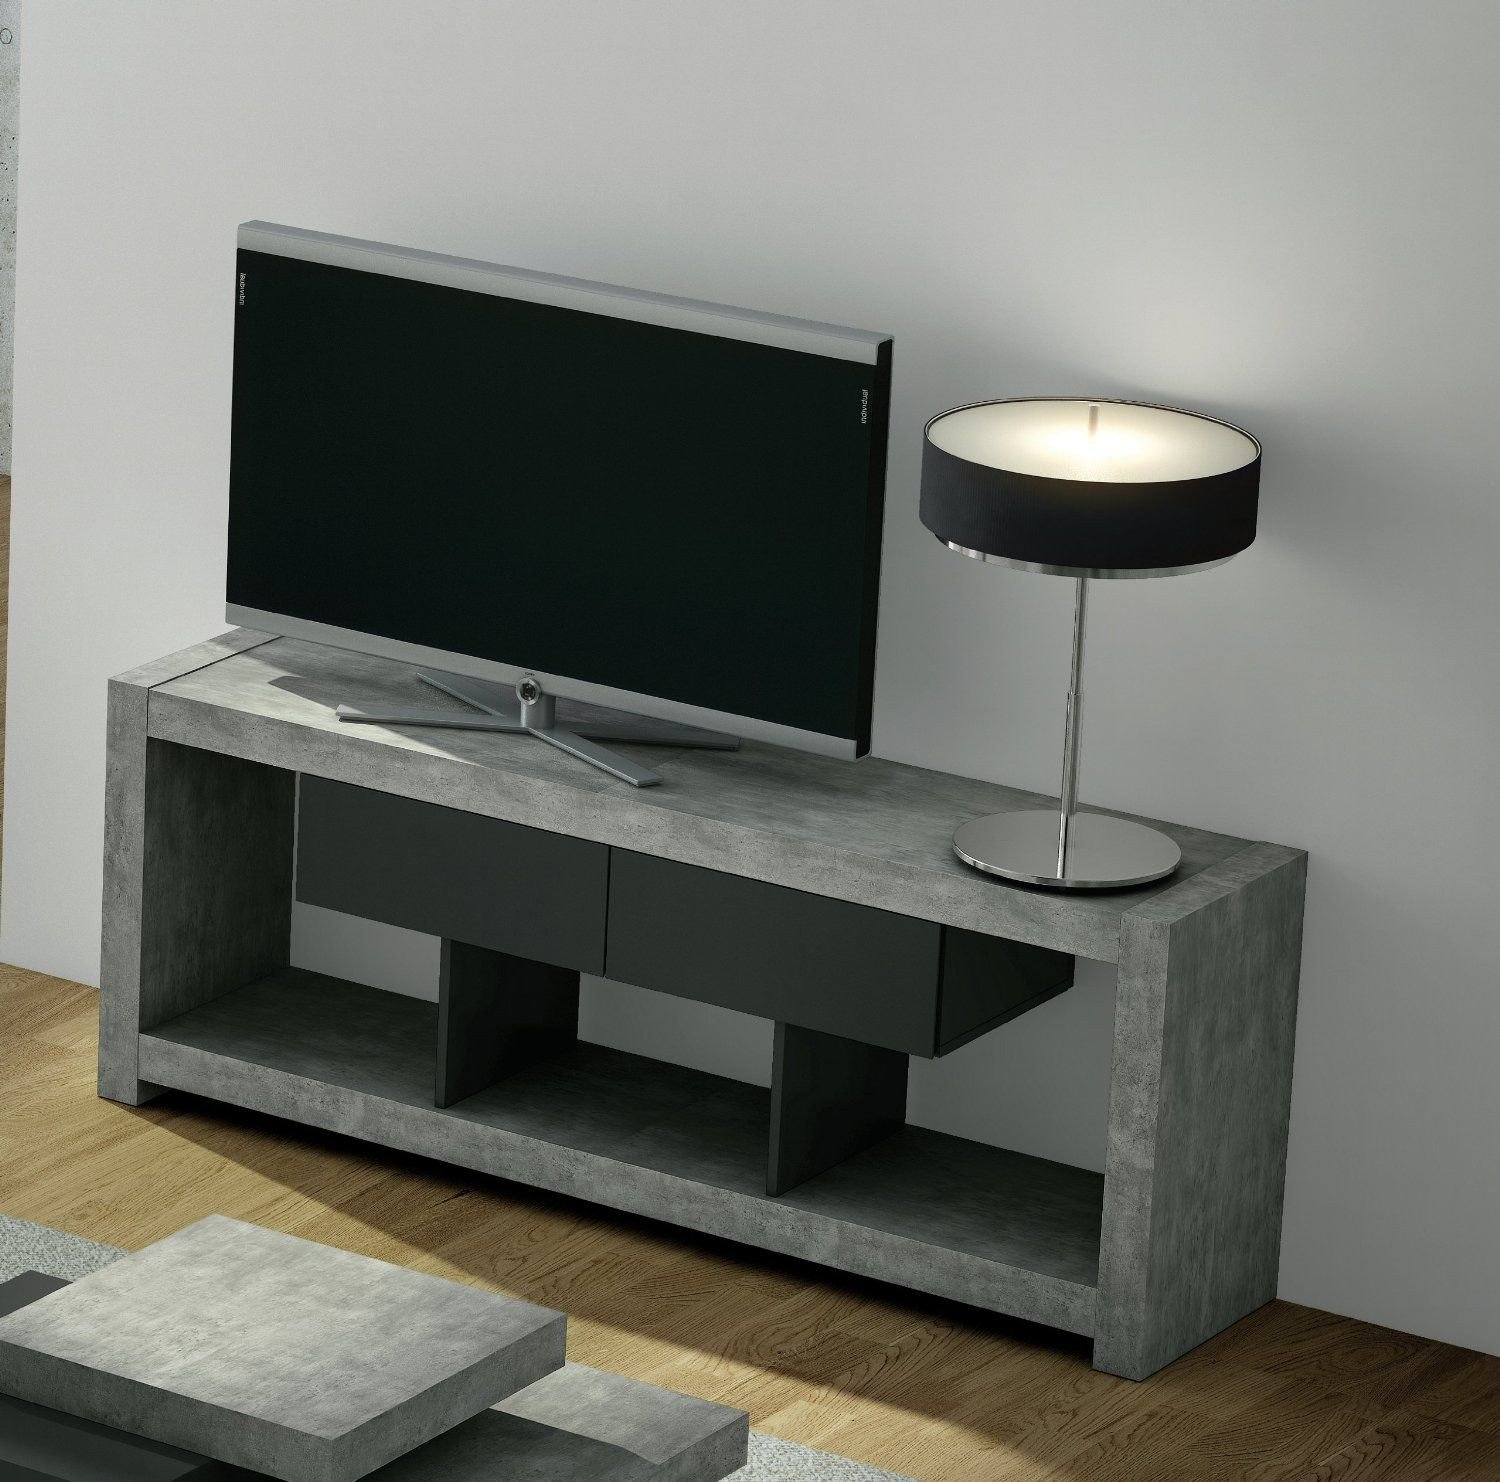 Small Tv for Bedroom Beautiful Temahome Concrete Tv Stand